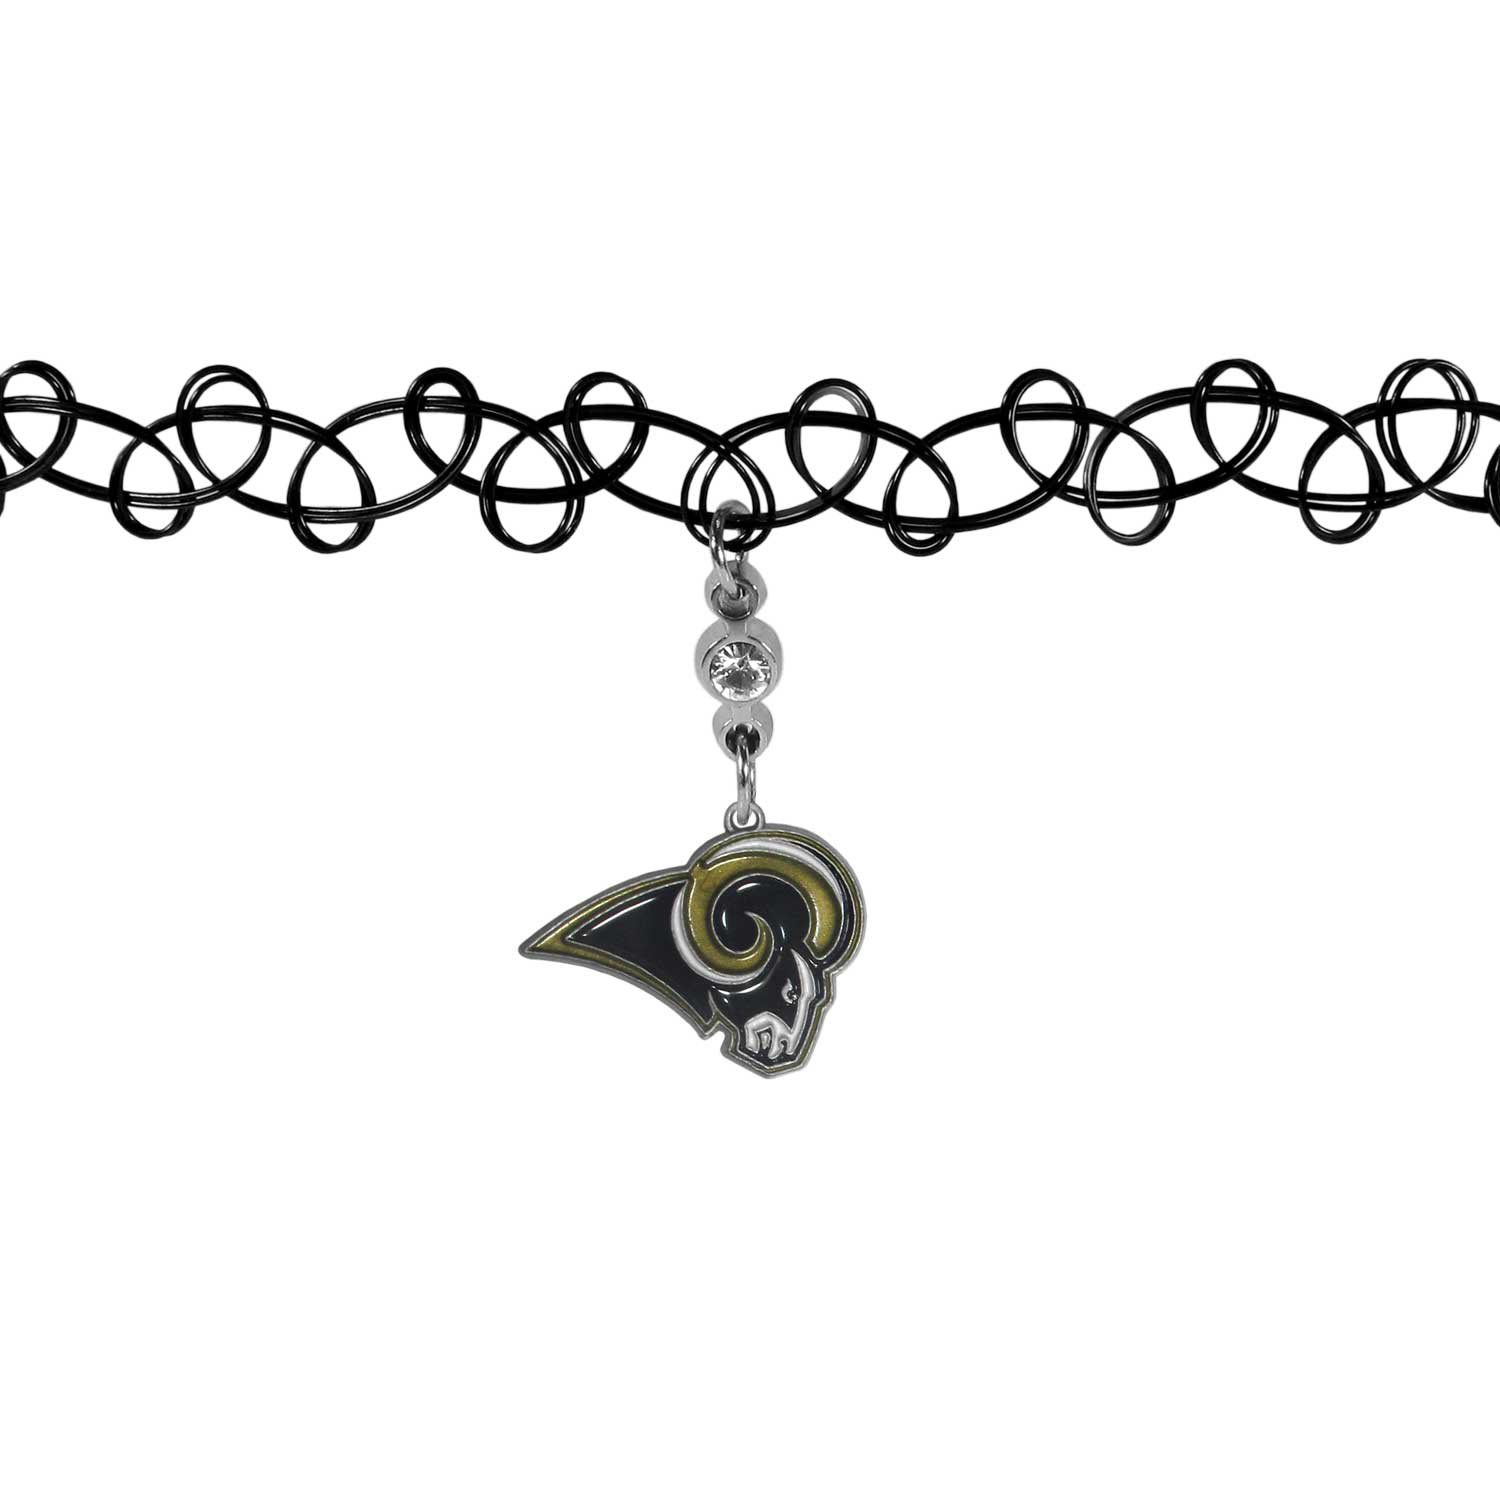 Los Angeles Rams Knotted Choker - This retro, knotted choker is a cool and unique piece of fan jewelry. The tattoo style choker features a high polish Los Angeles Rams charm with rhinestone accents.